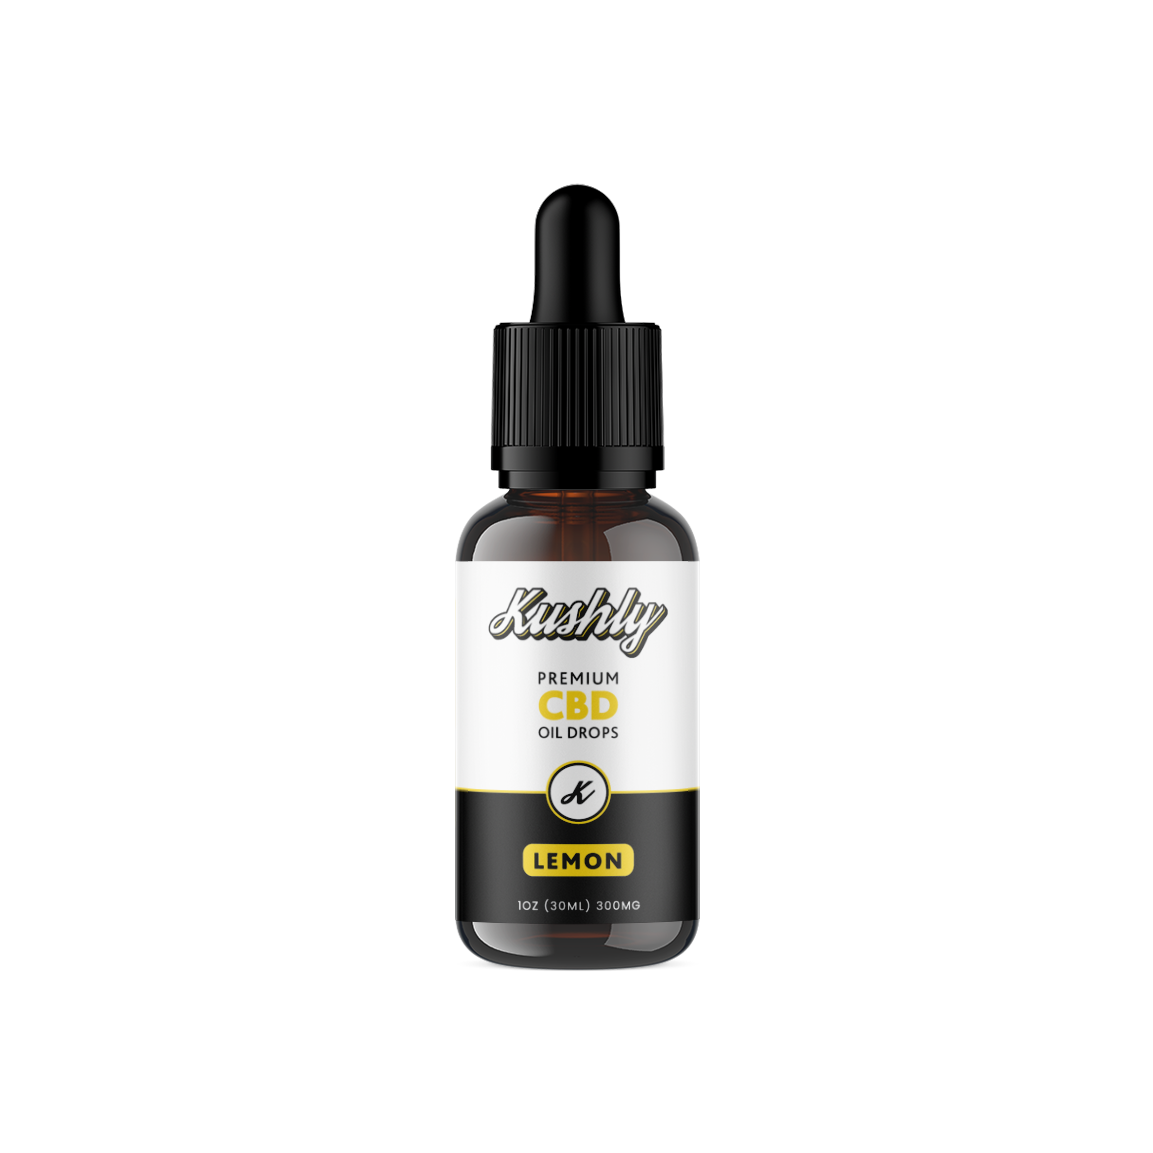 Kushly CBD Oil, Lemon